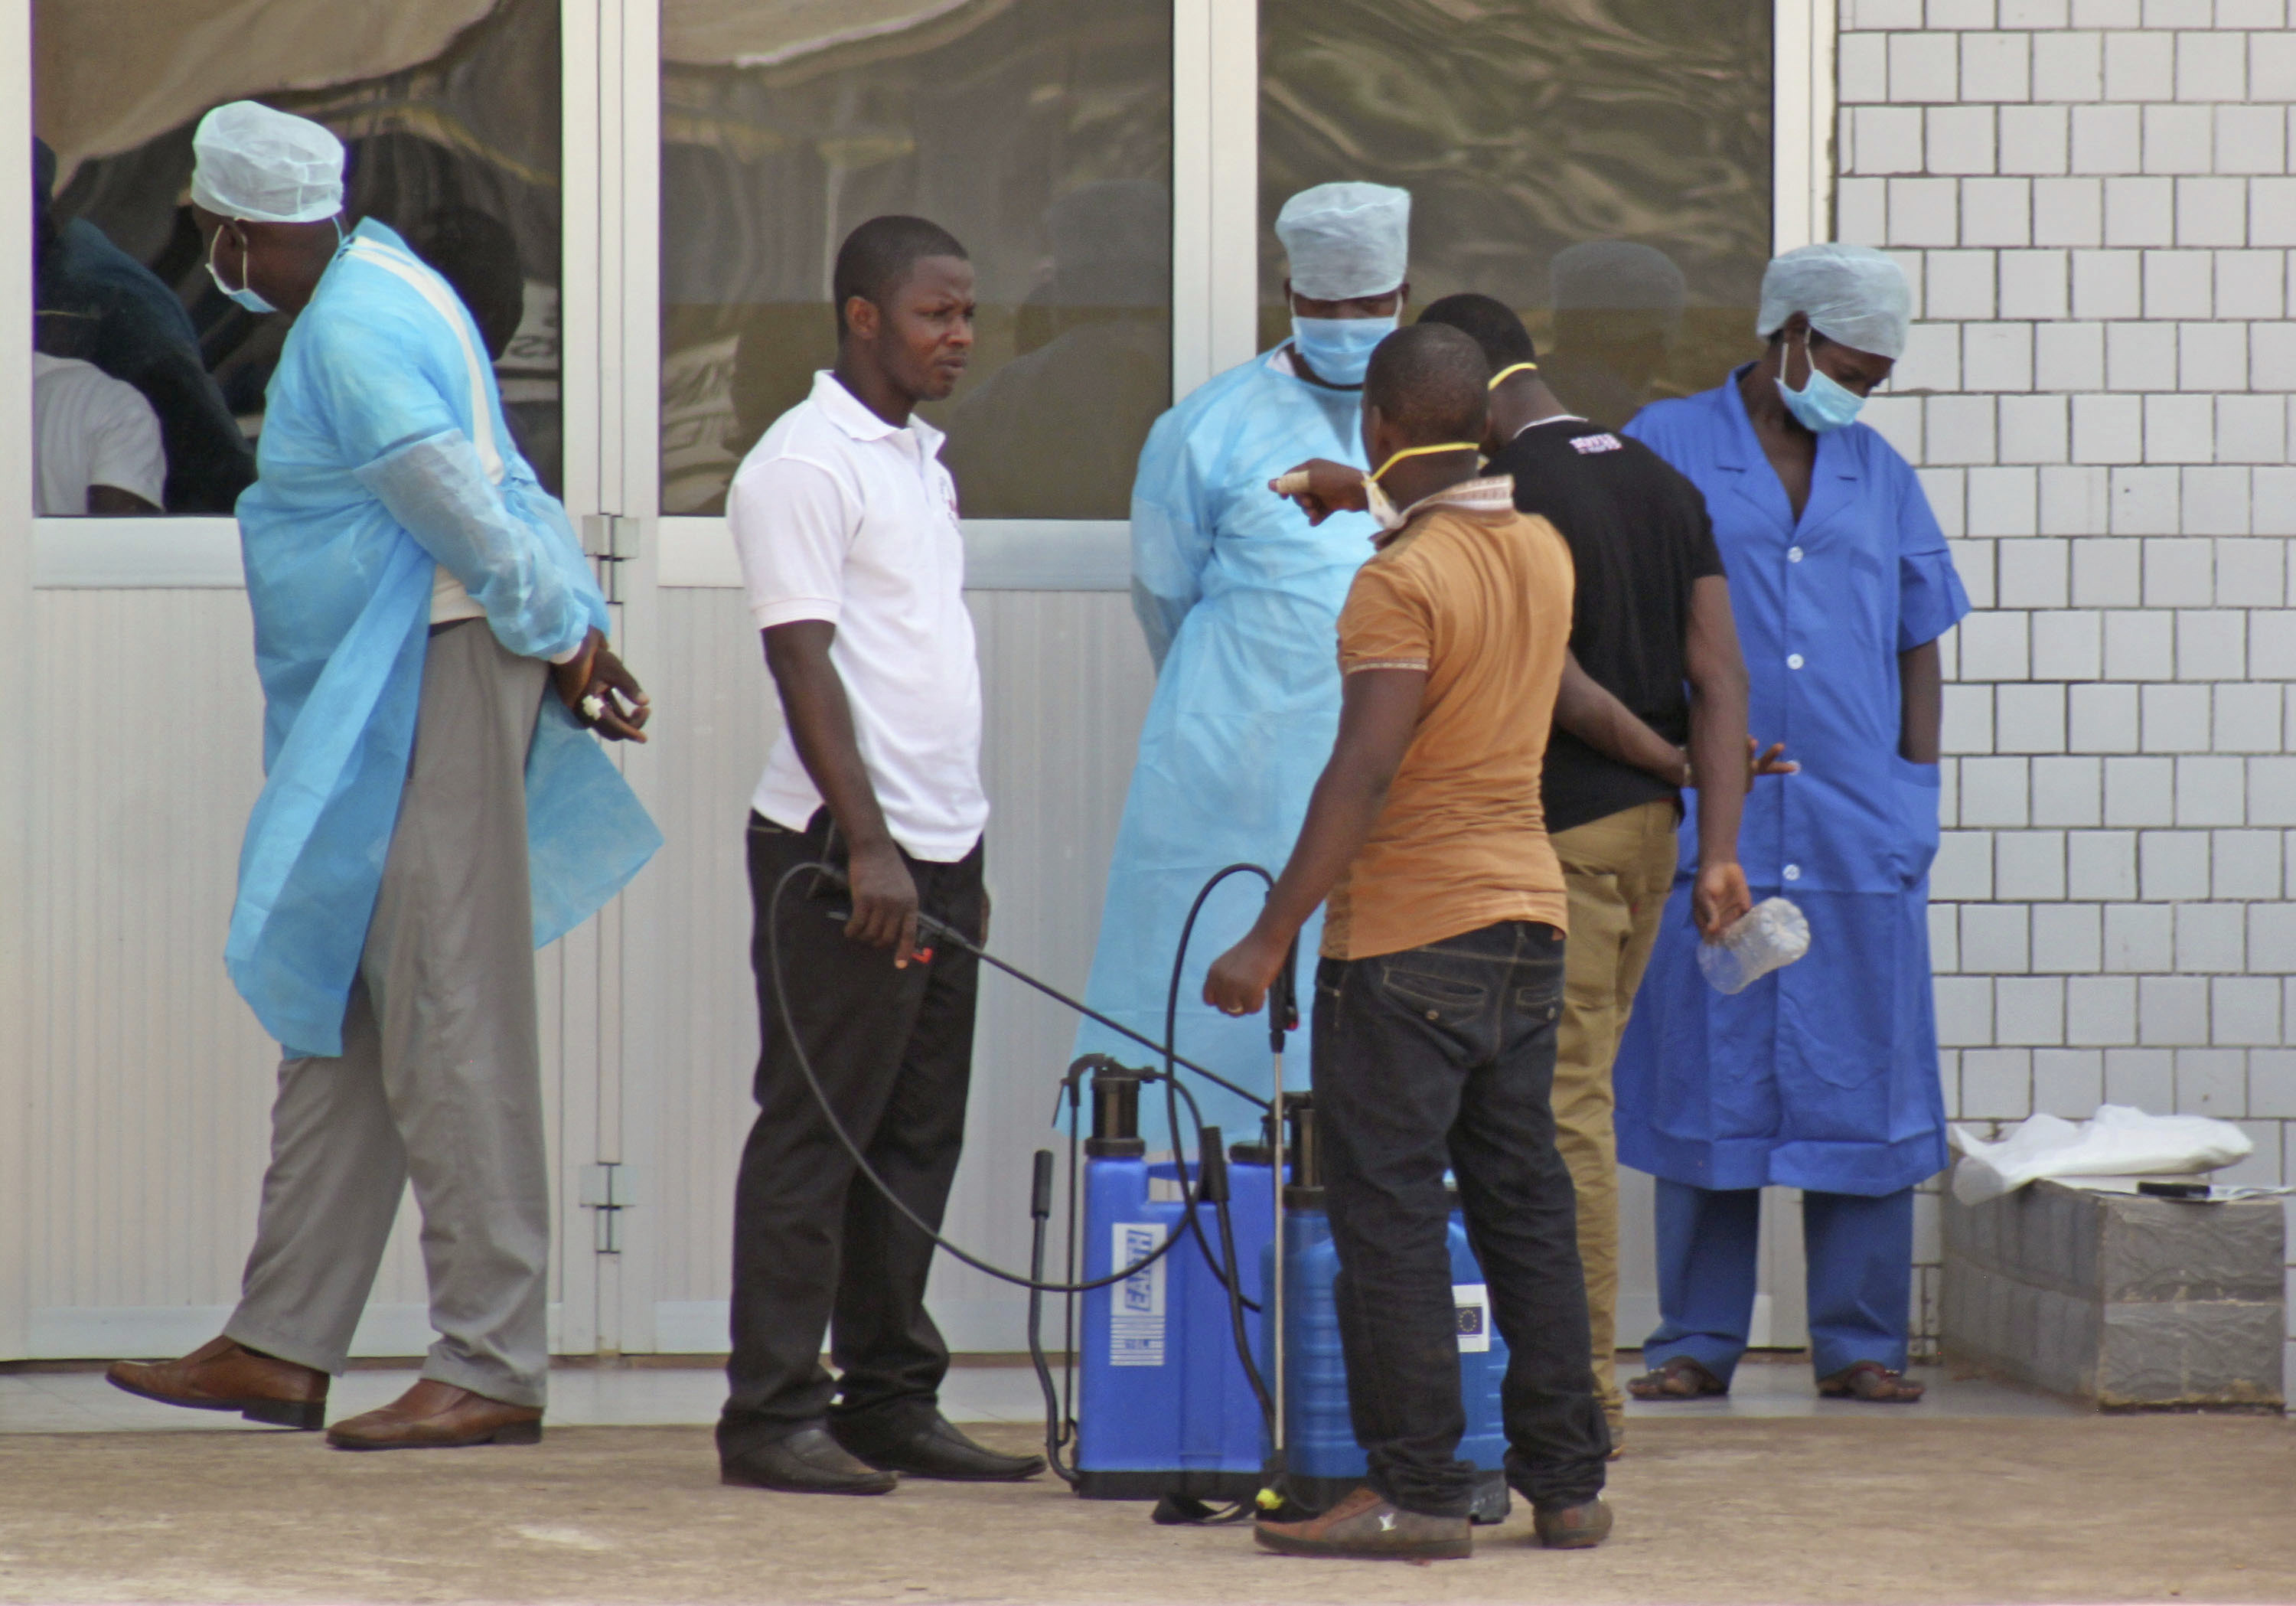 Final test results confirm Ebola vaccine highly effective